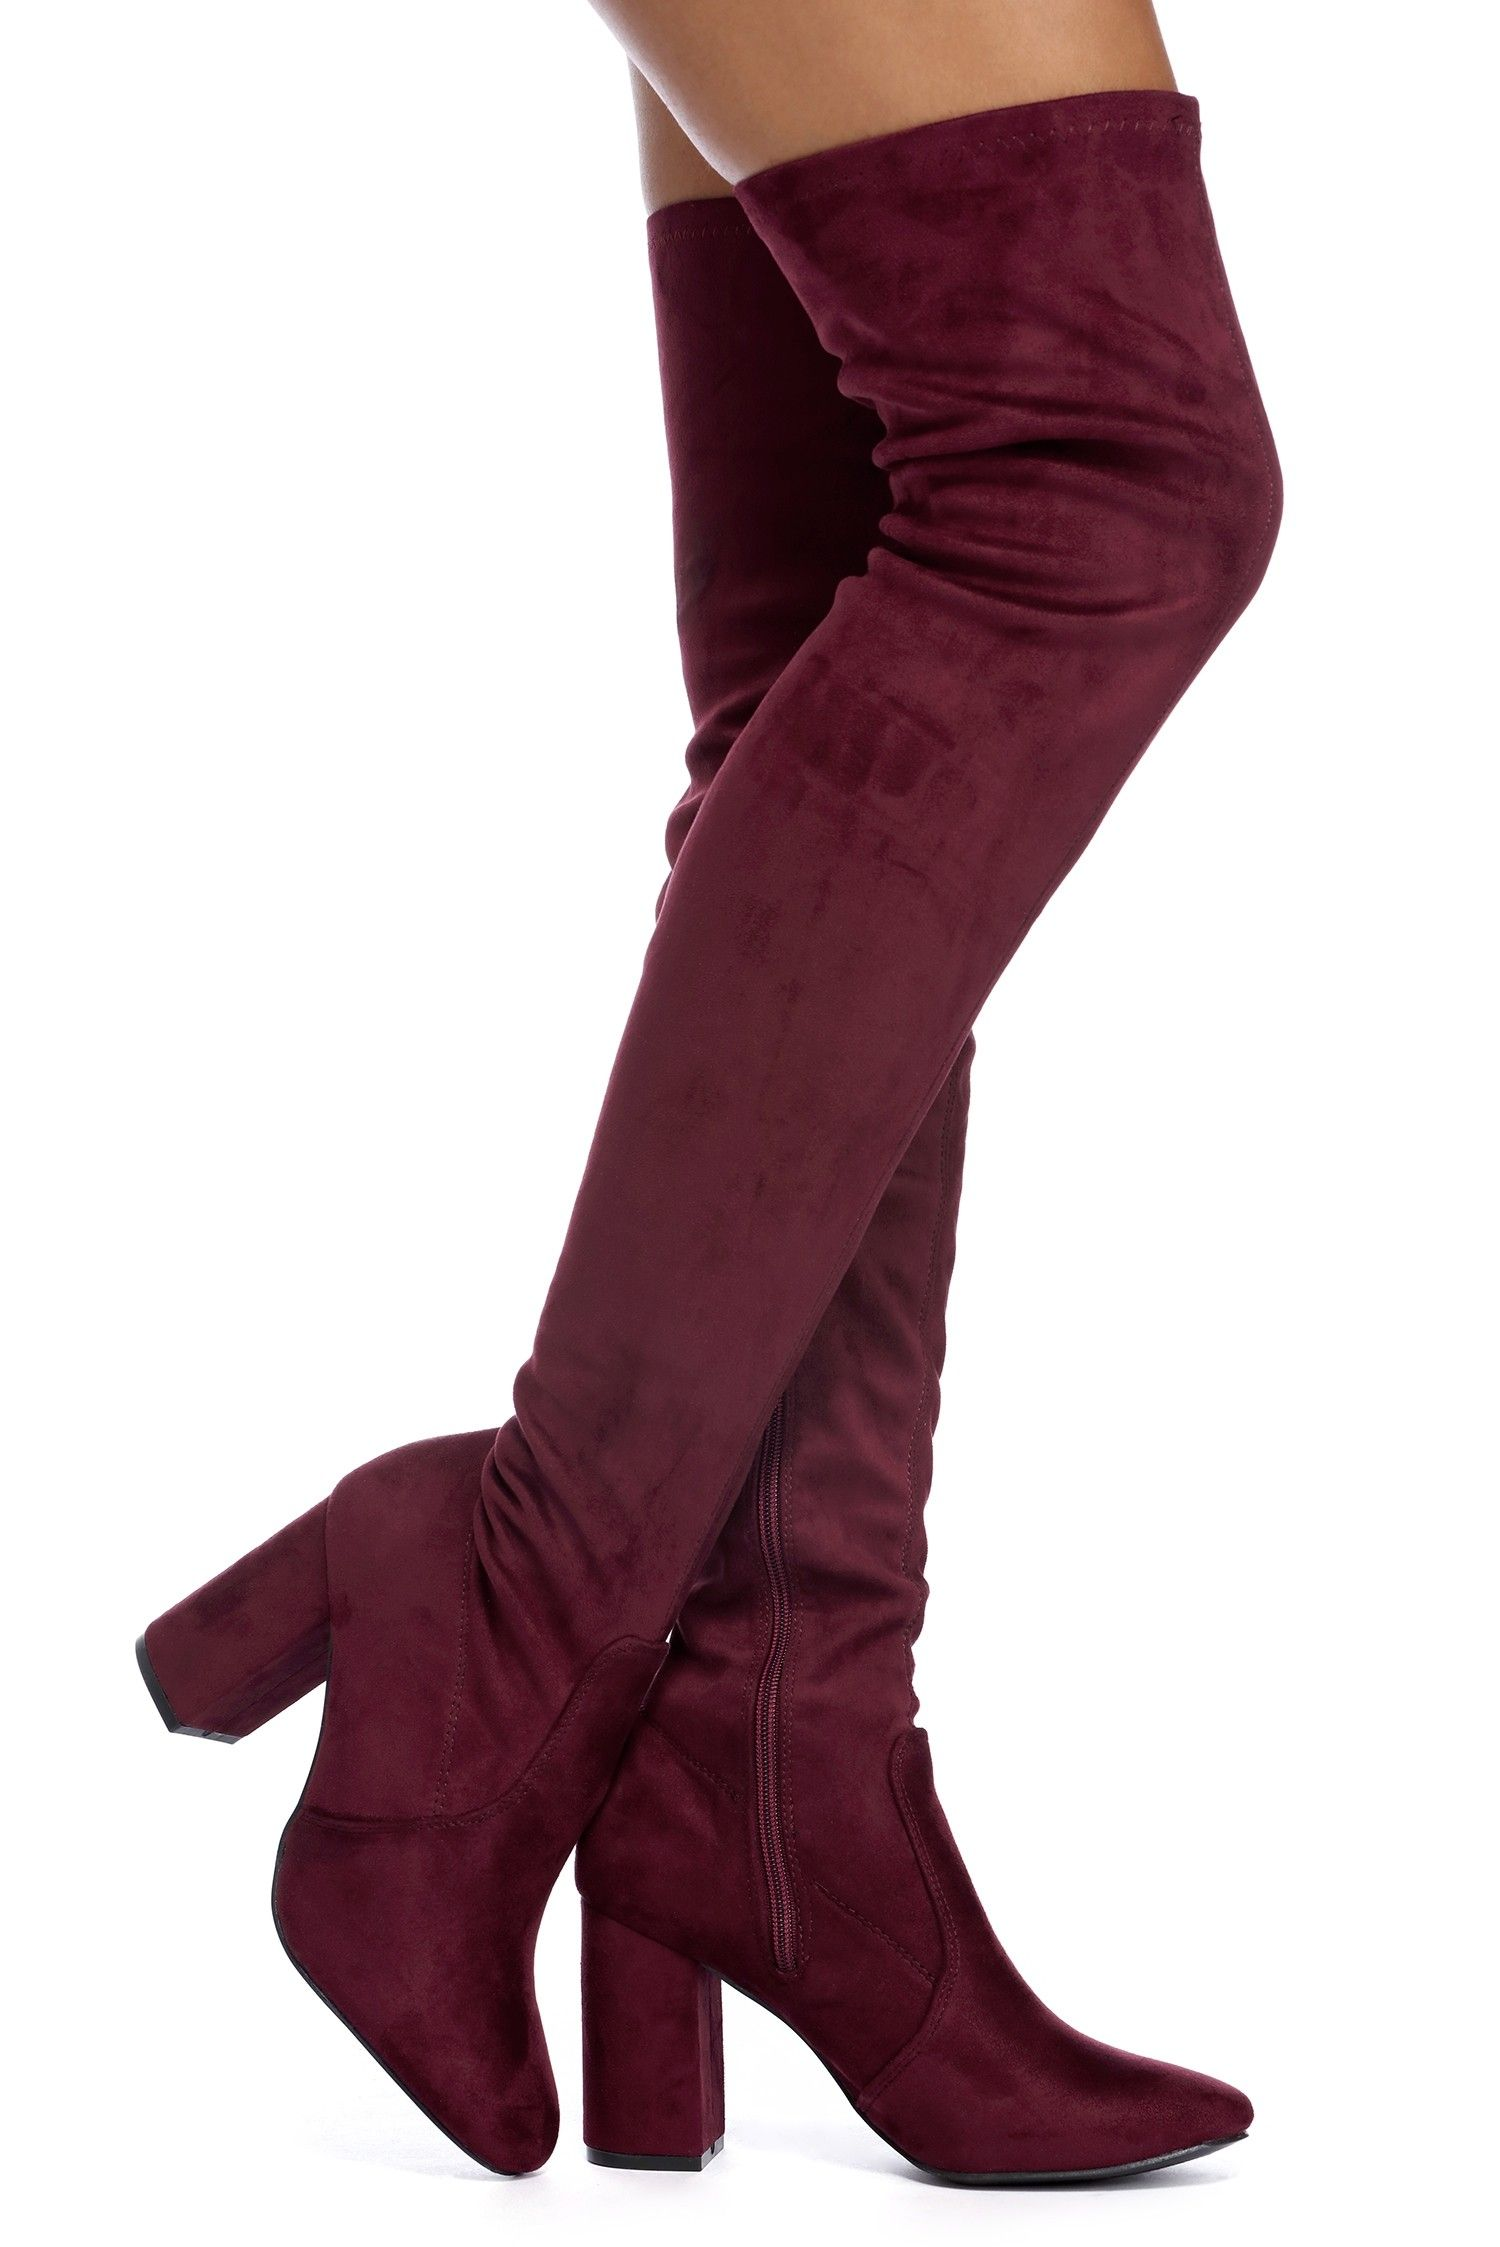 04e6b67027 Windsor Burgundy Suede In Love Boots